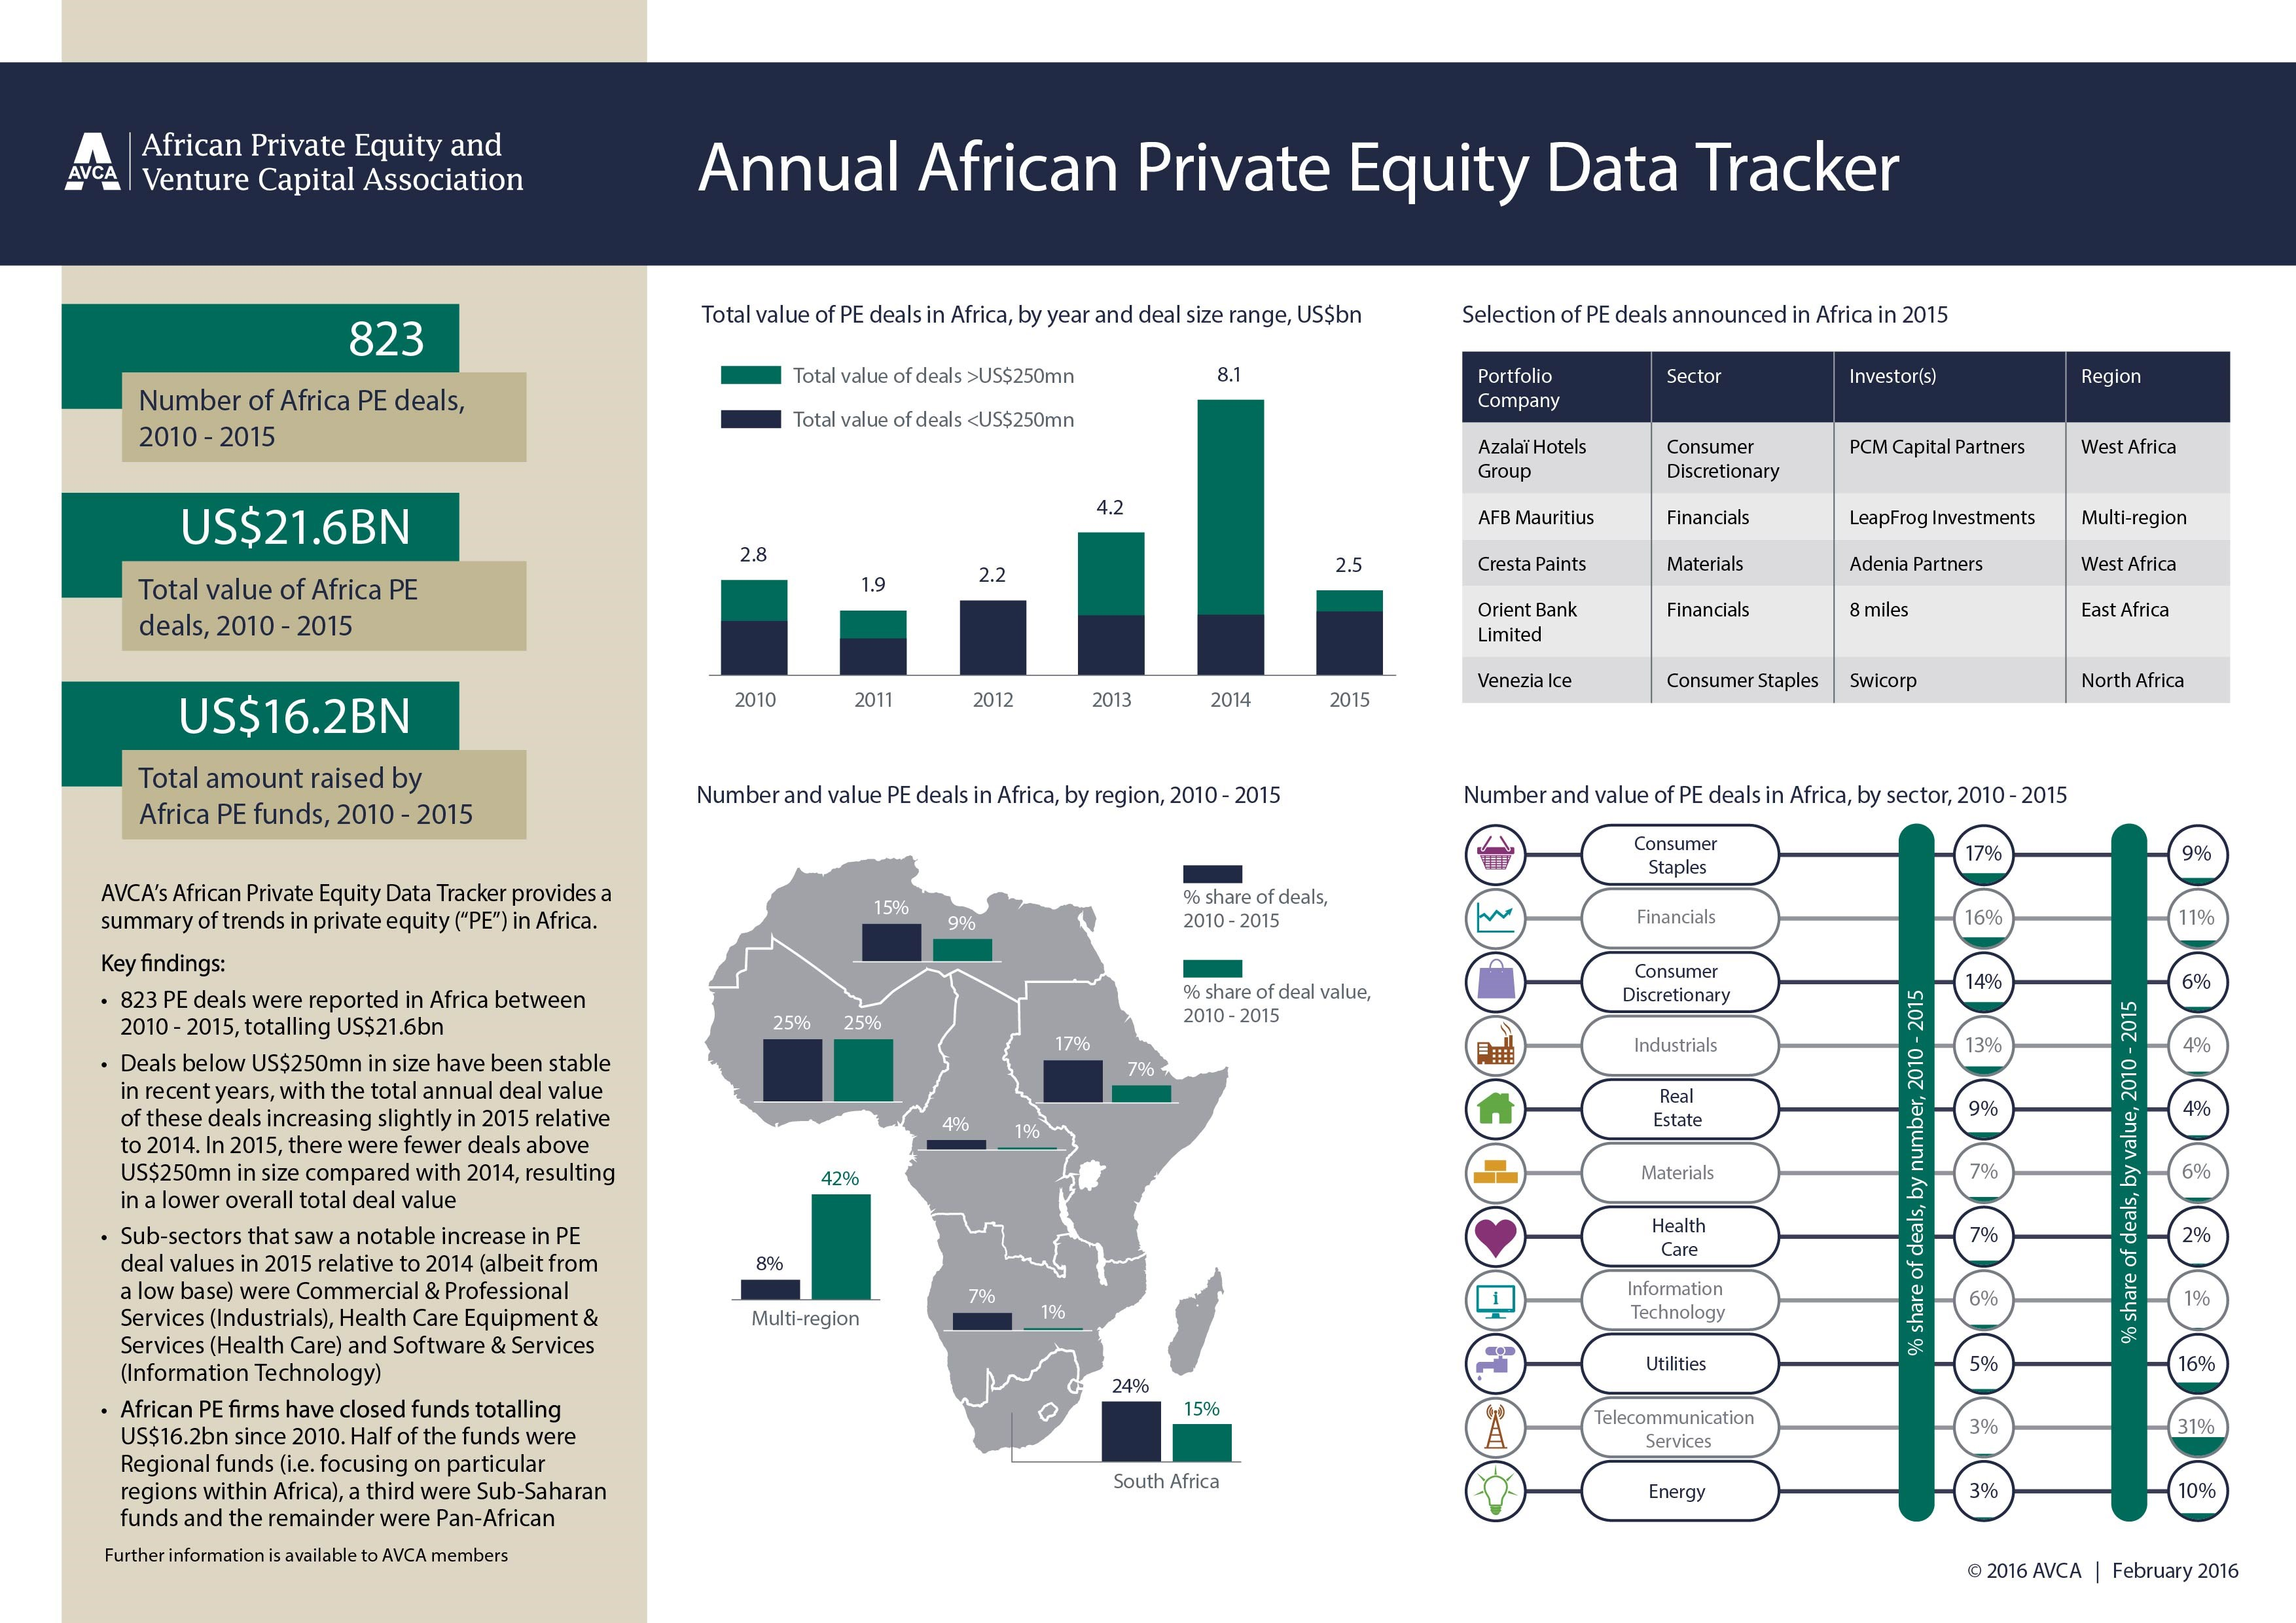 Annual African Private Equity Data Tracker